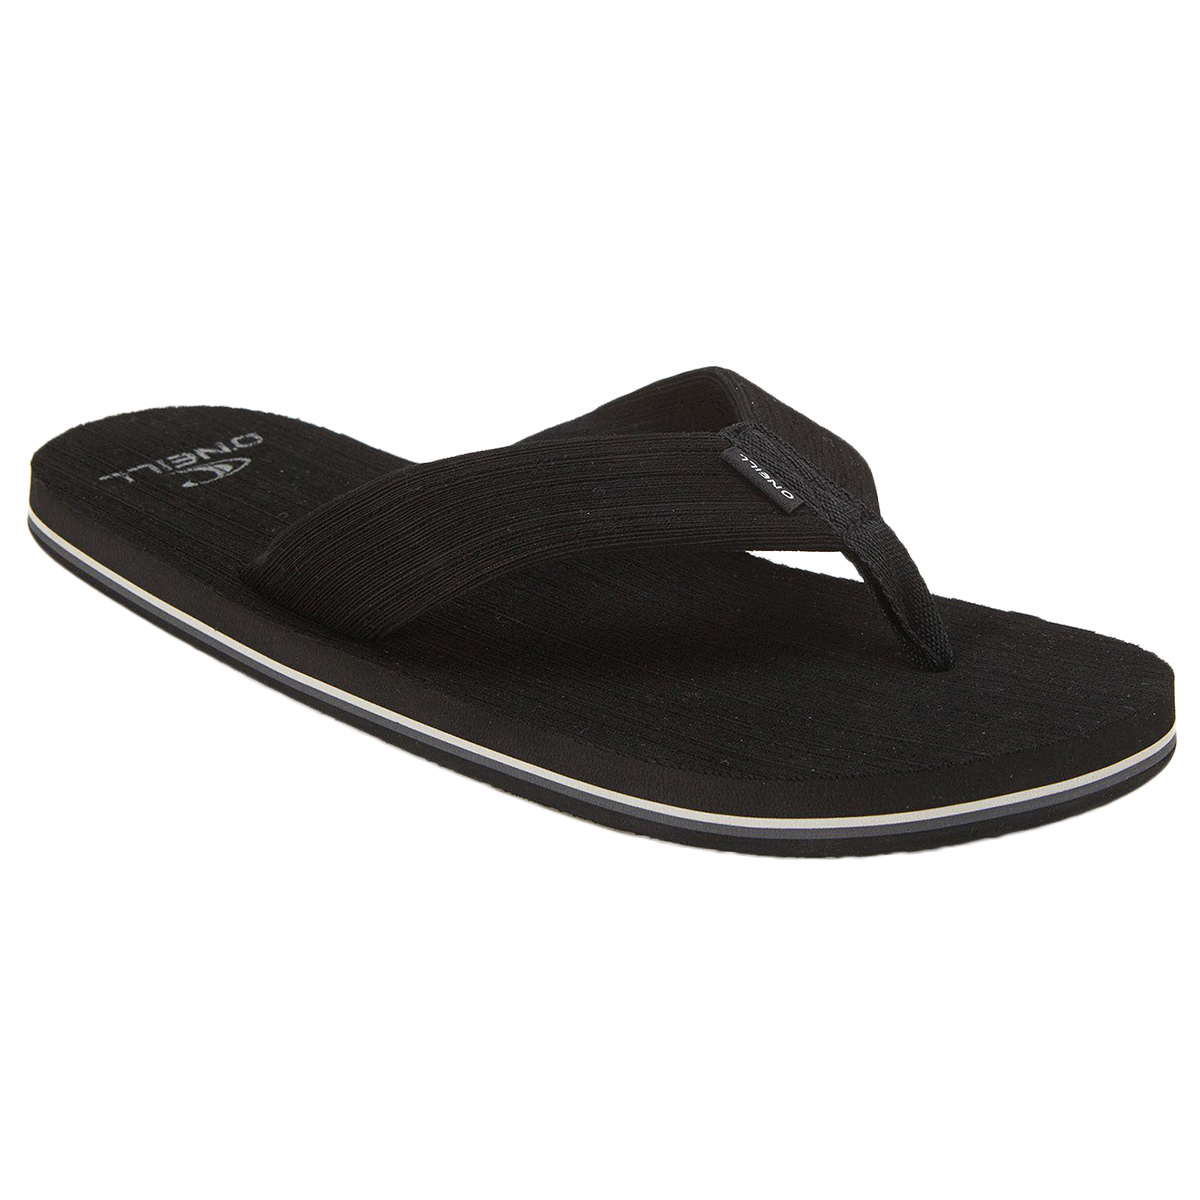 O'neill Men's Phluff Daddy Sandals - Black, 11